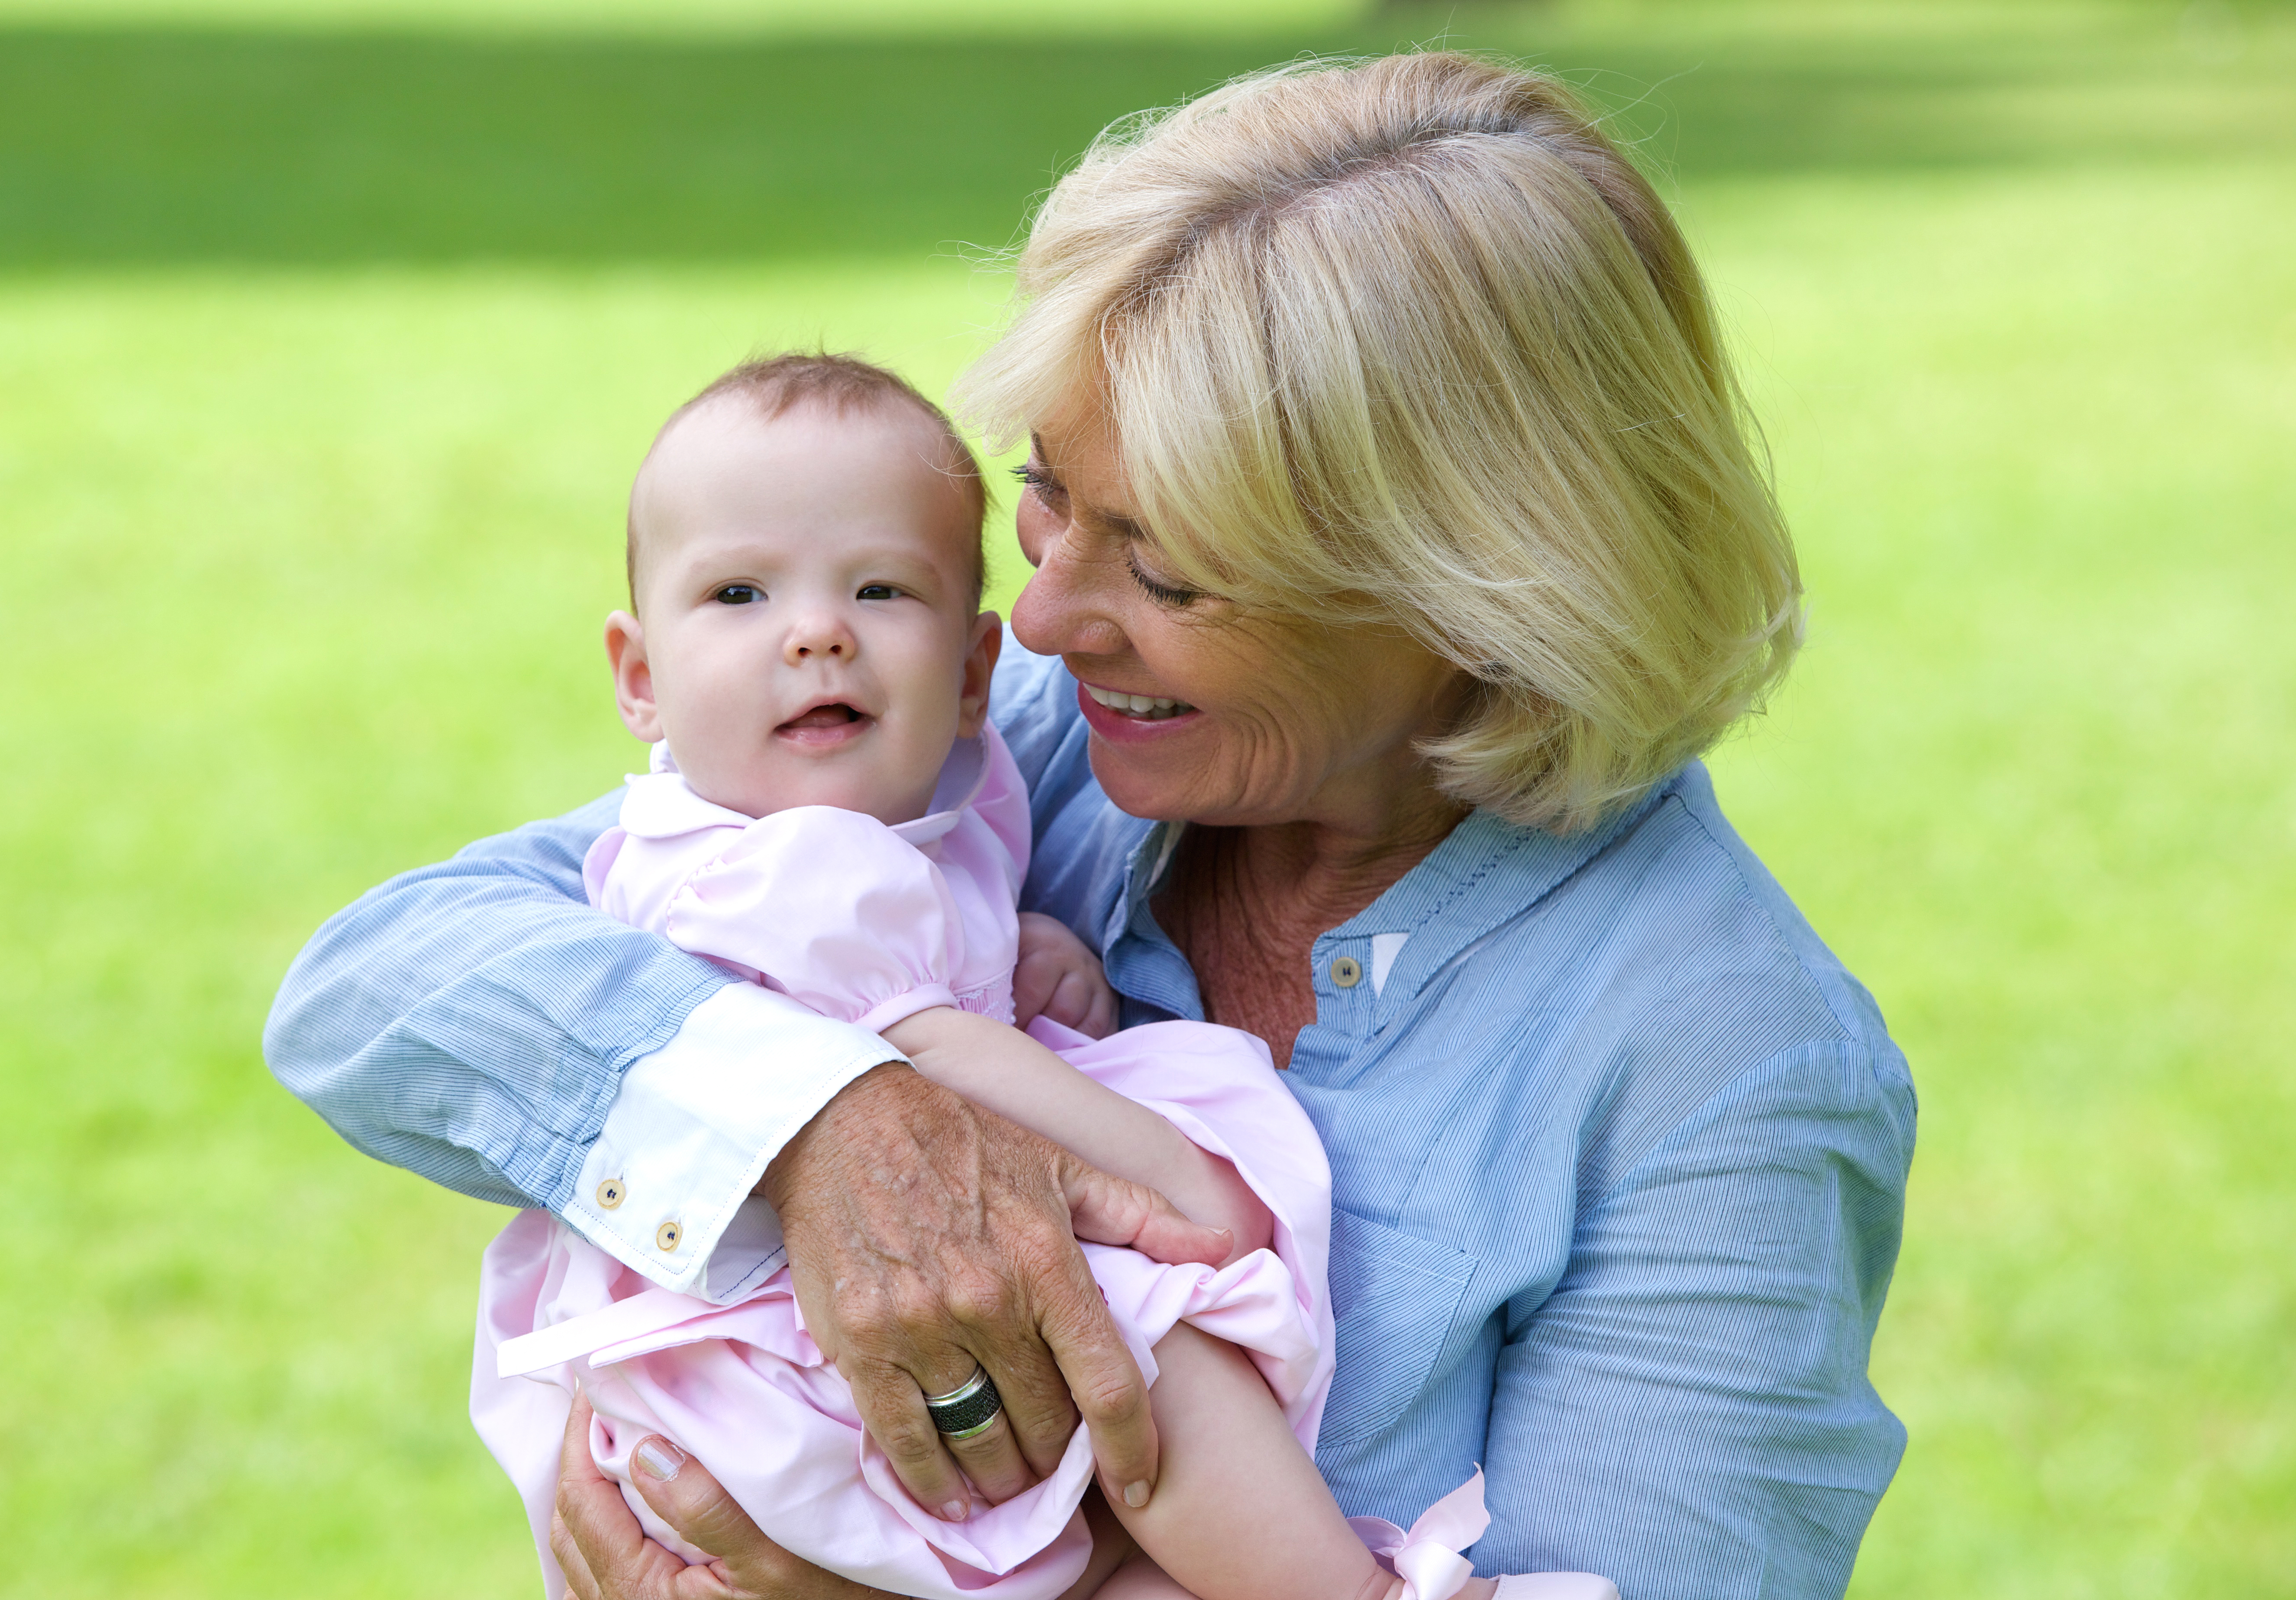 7 Considerations for the Multigenerational Transfer of Wealth